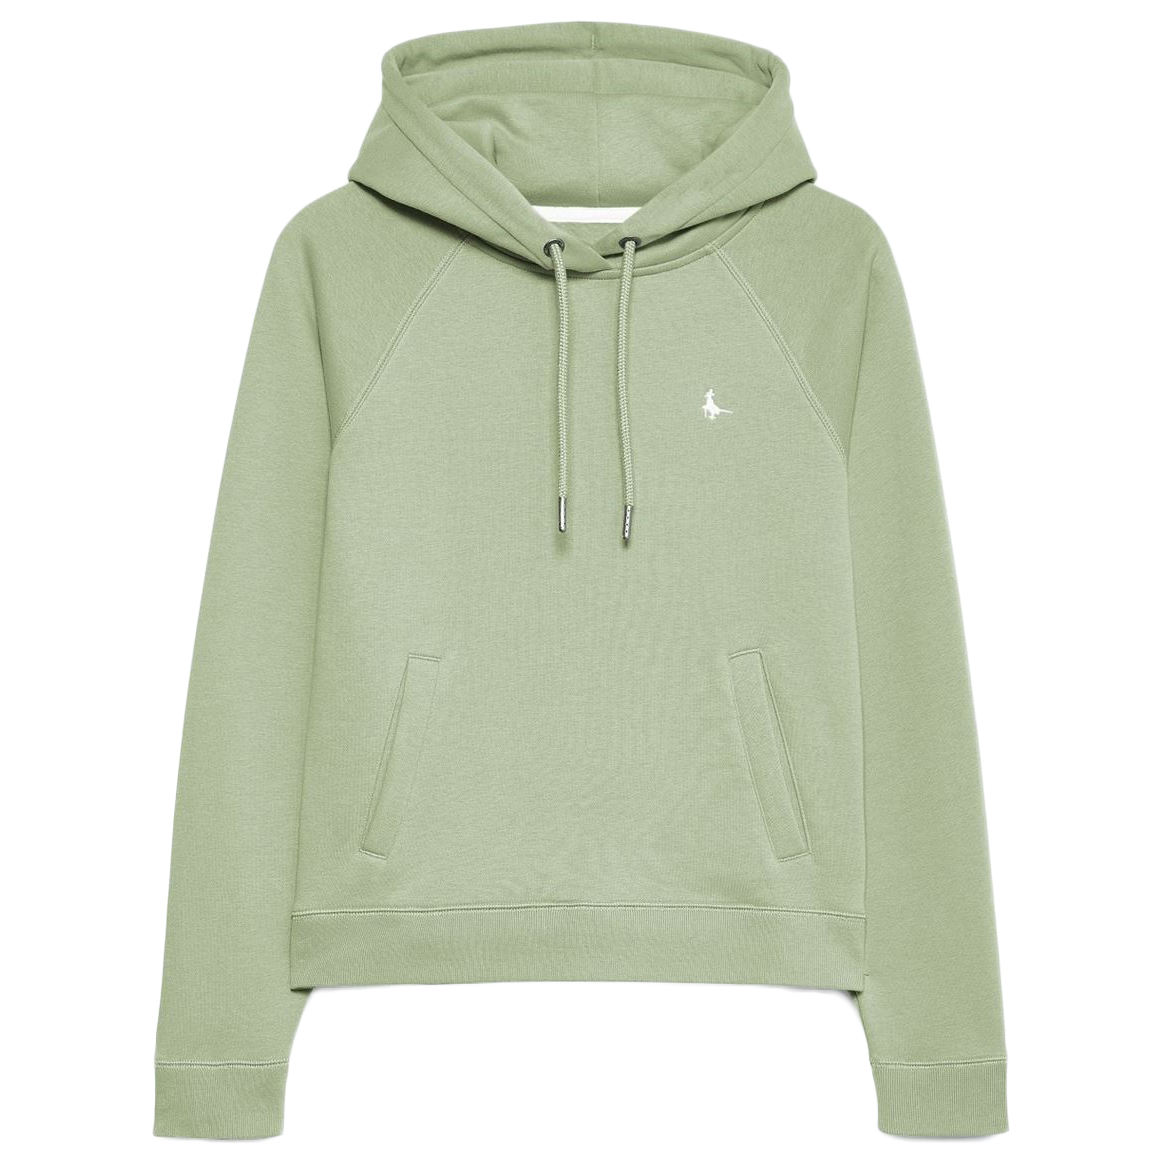 Jack Wills Women's Collingdon Raglan Hoodie - Green, 6